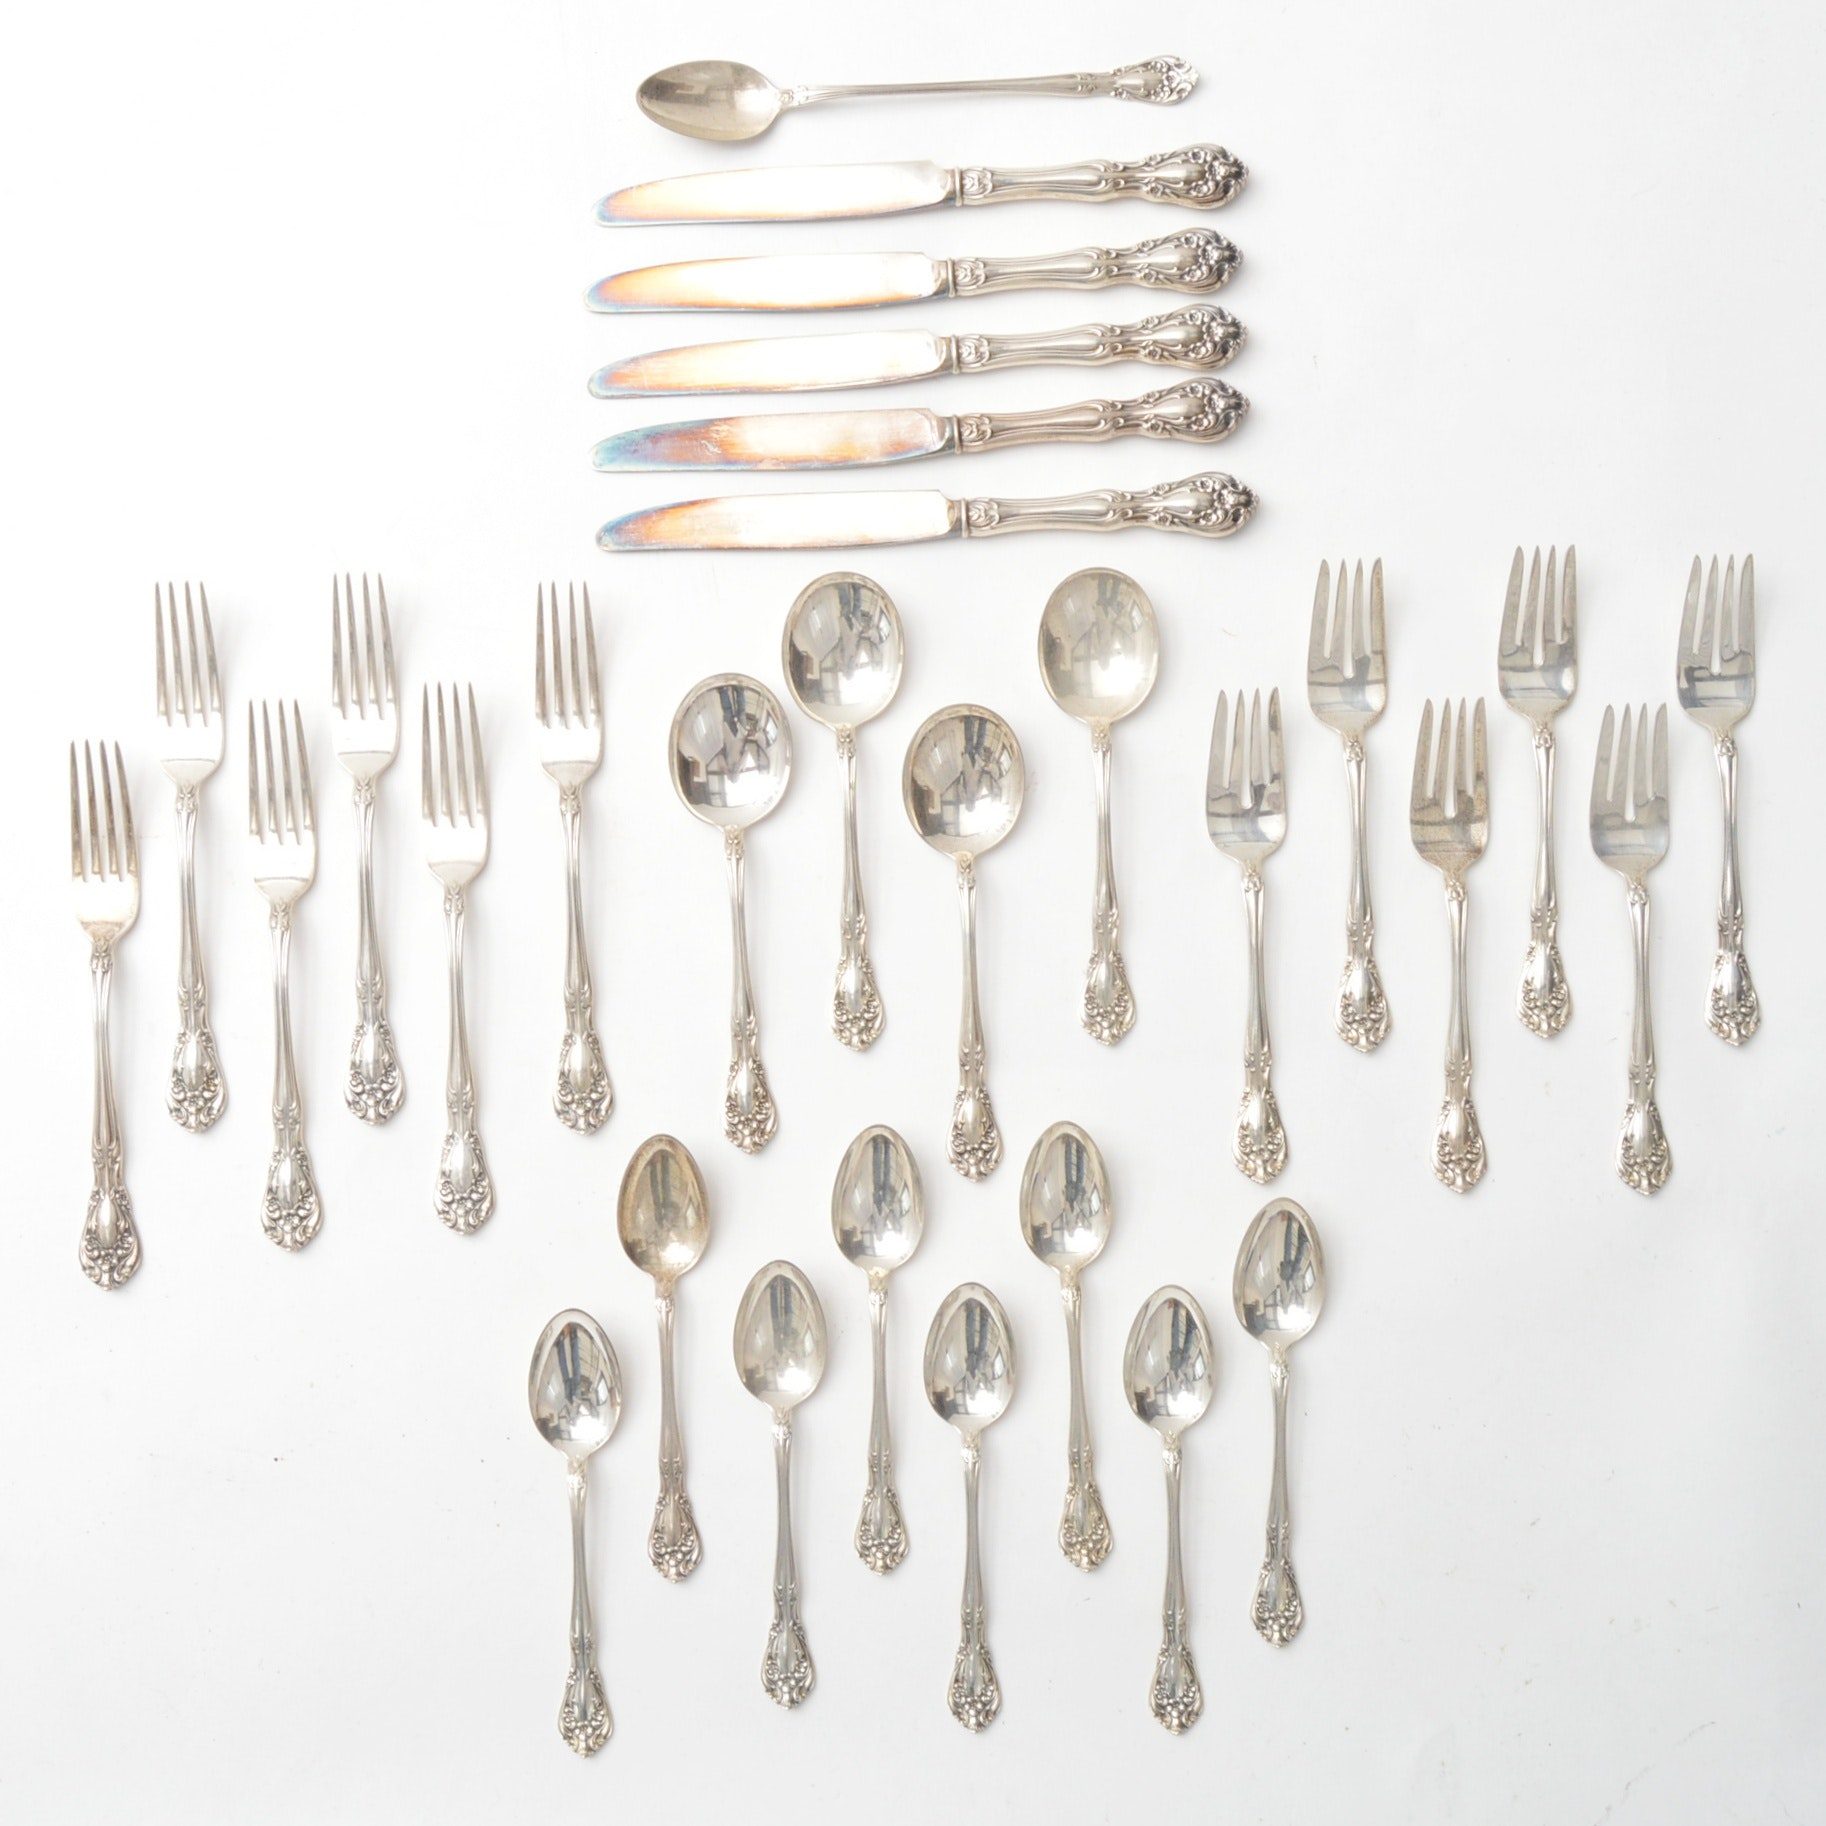 """Set of Alvin """"Chateau Rose"""" Sterling Silver Flatware"""